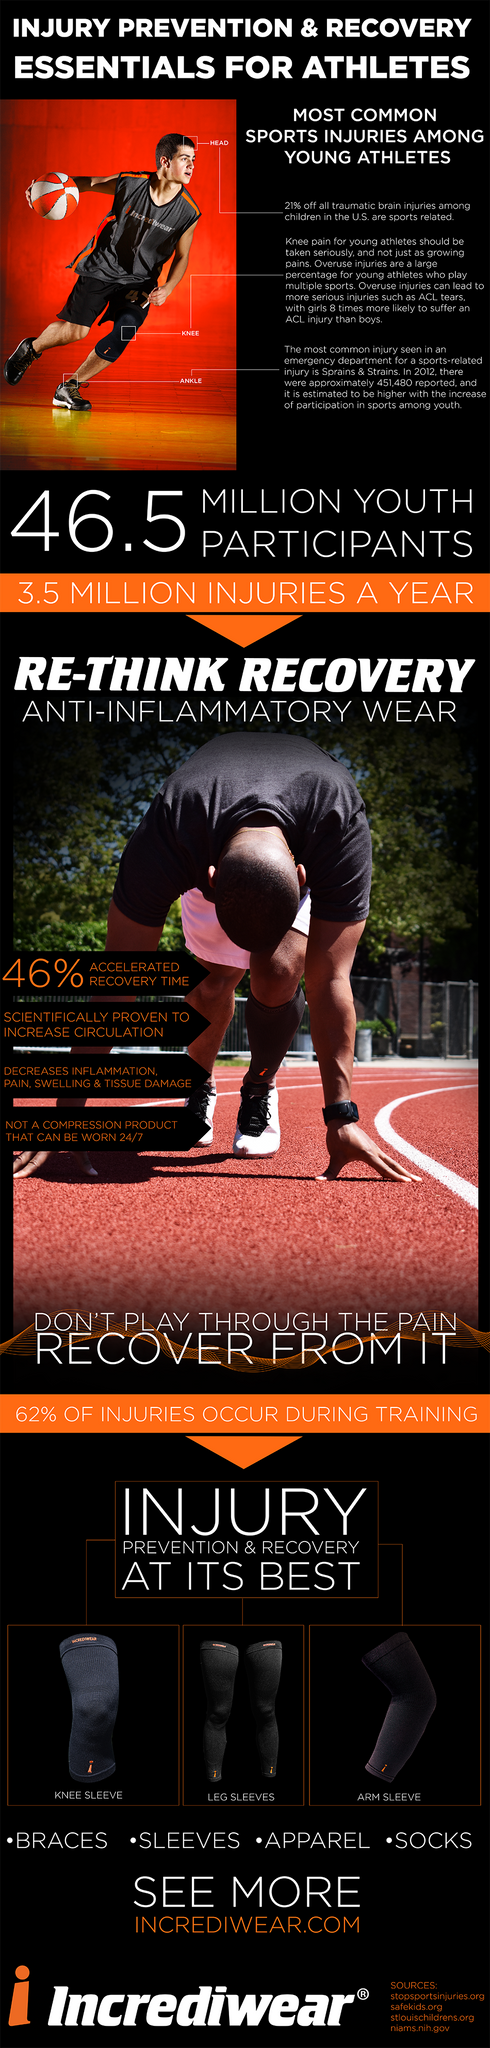 Incrediwear Pain Relief & Recovery Infographic